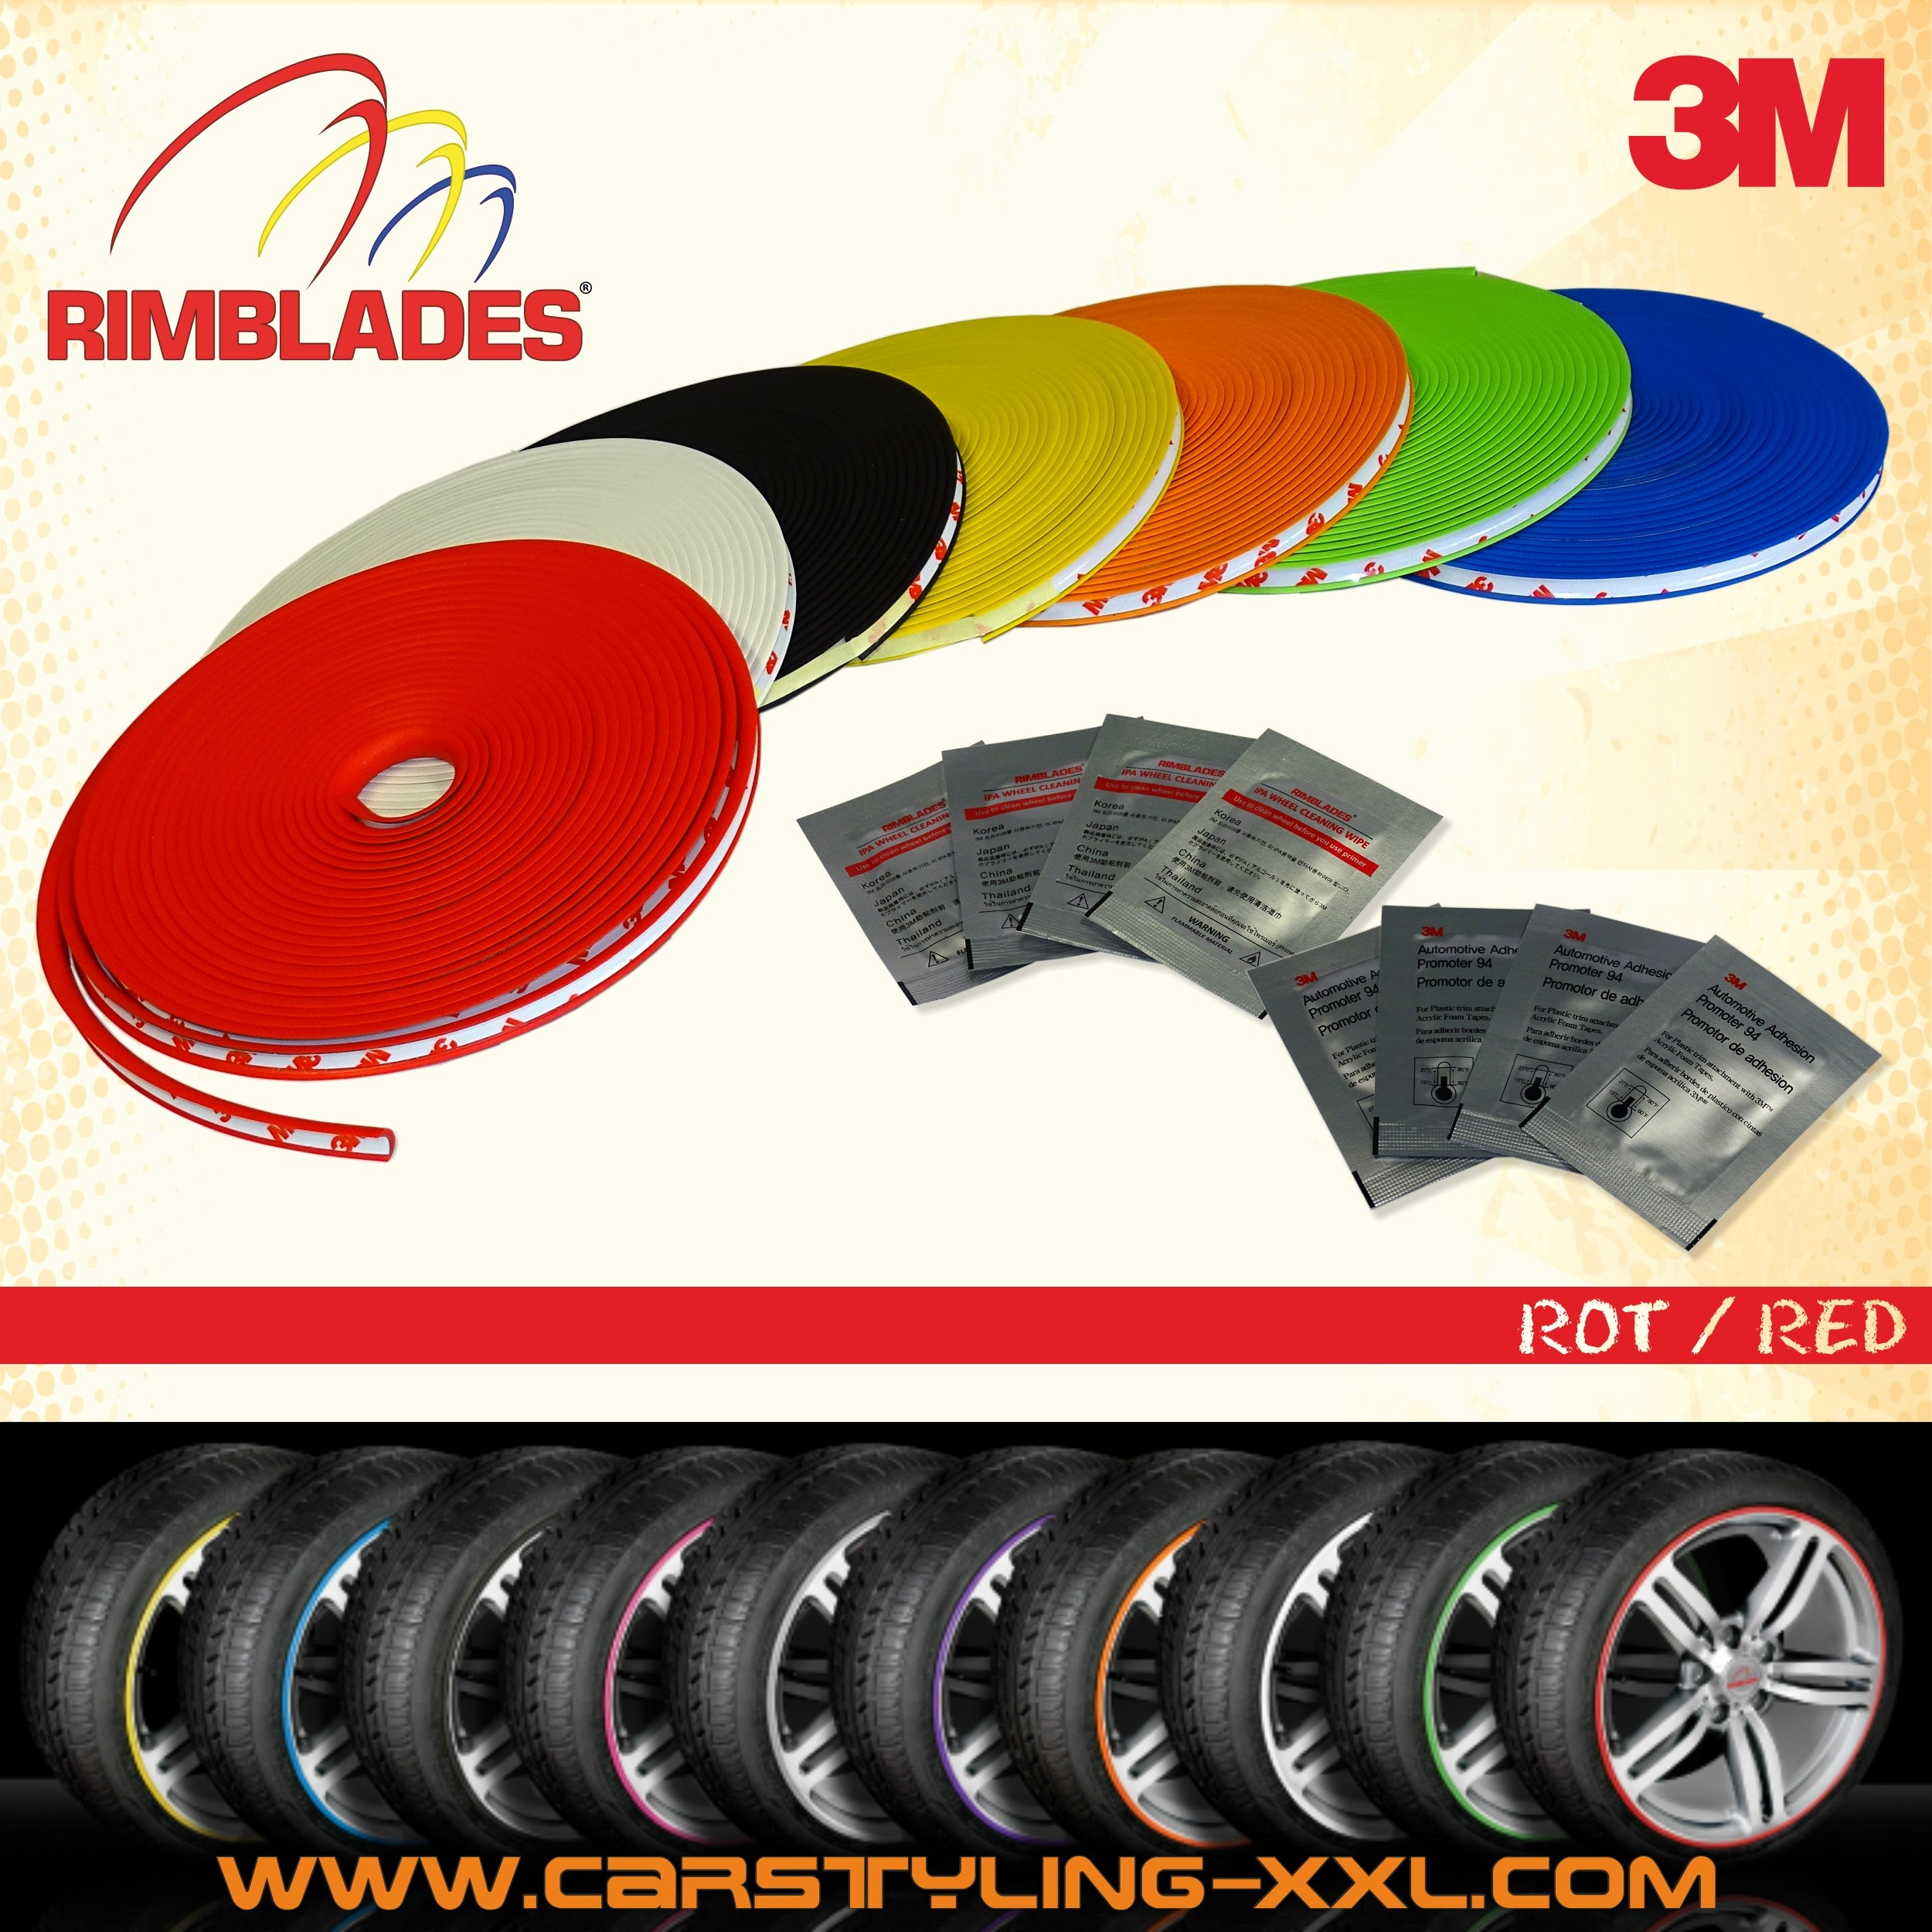 Rimblades with 3M glue - colour: red - Premium rim protection and styling for alloy wheel rims up to 22'' – Bild 1